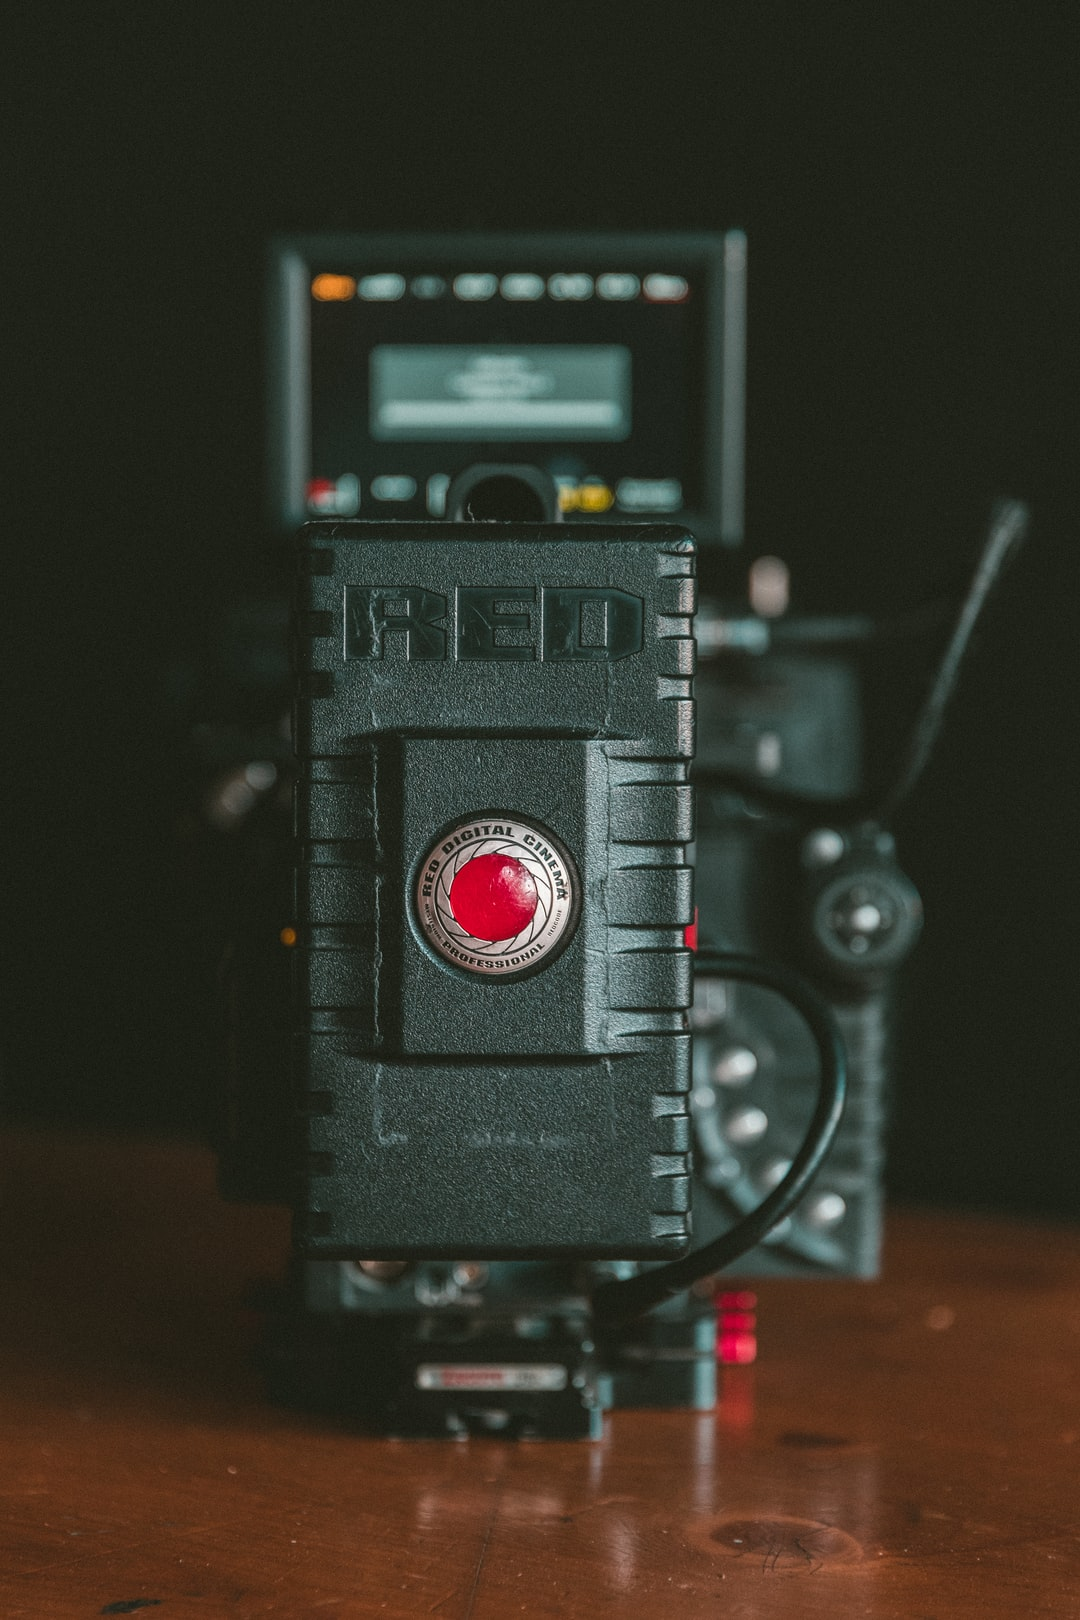 72 Best Images About Stuff I Like On Pinterest: 72 Best Free Digital HD Photos On Unsplash